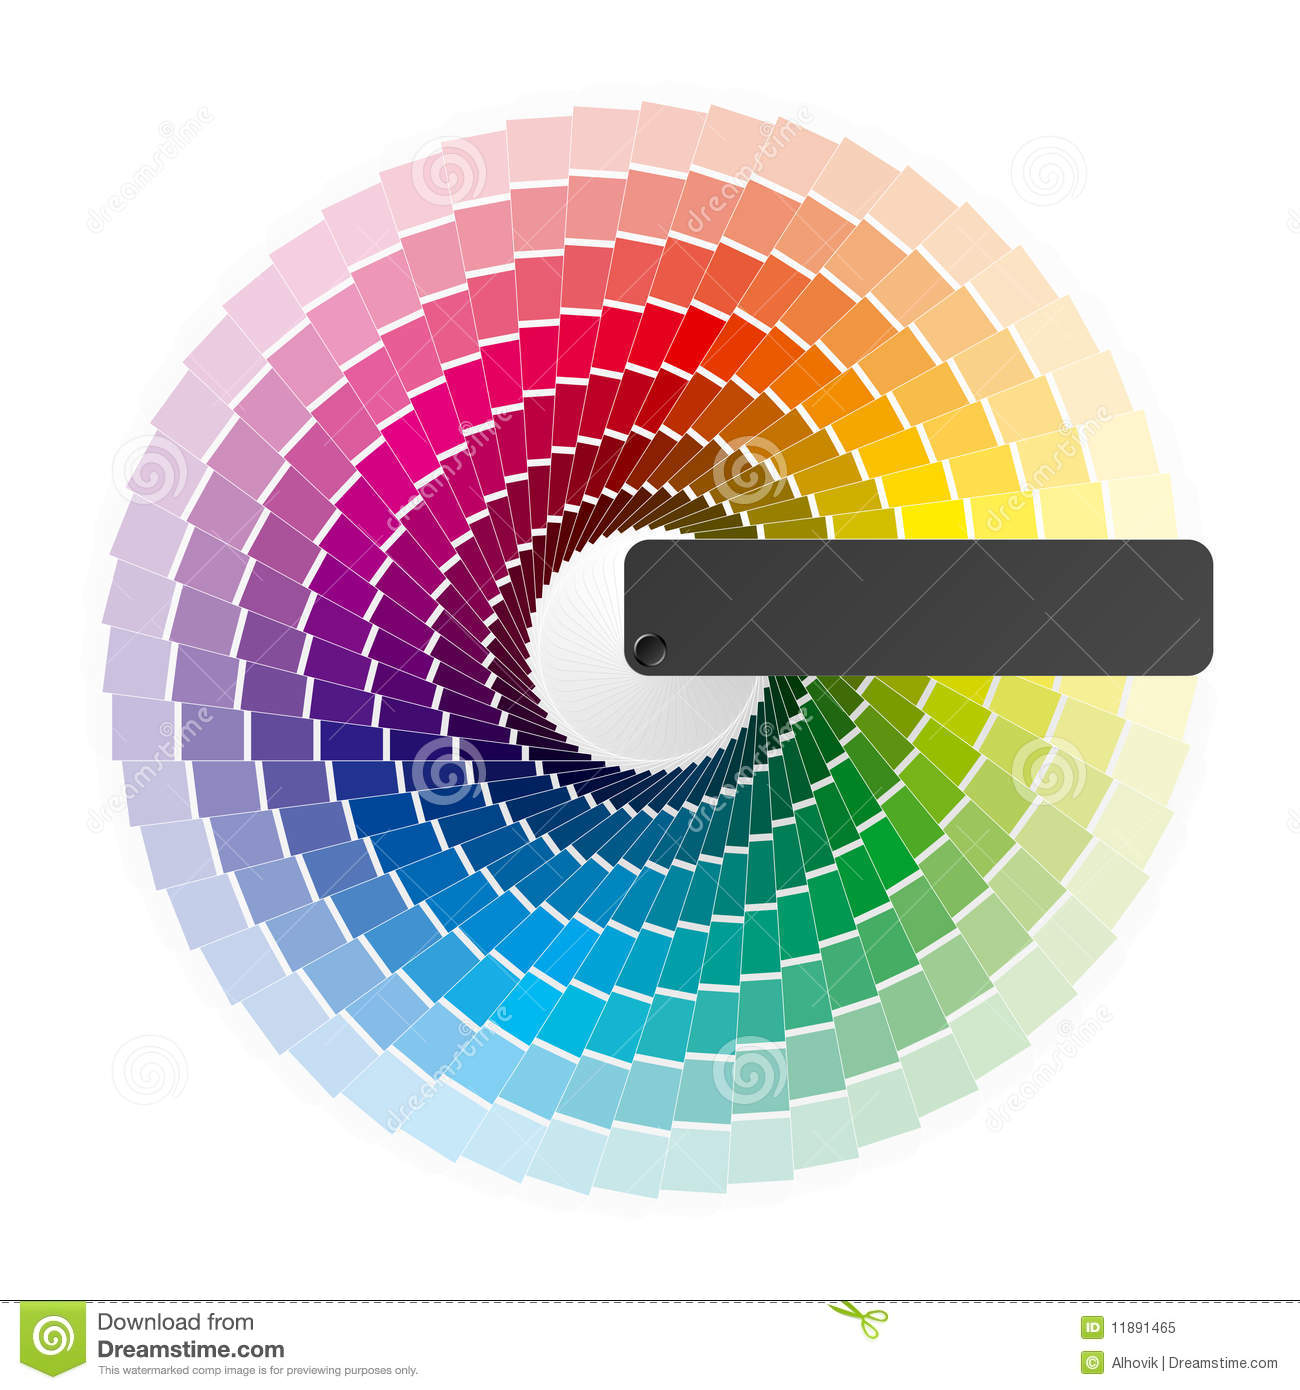 Color wheel stock image 2419459 - Rueda de colores ...